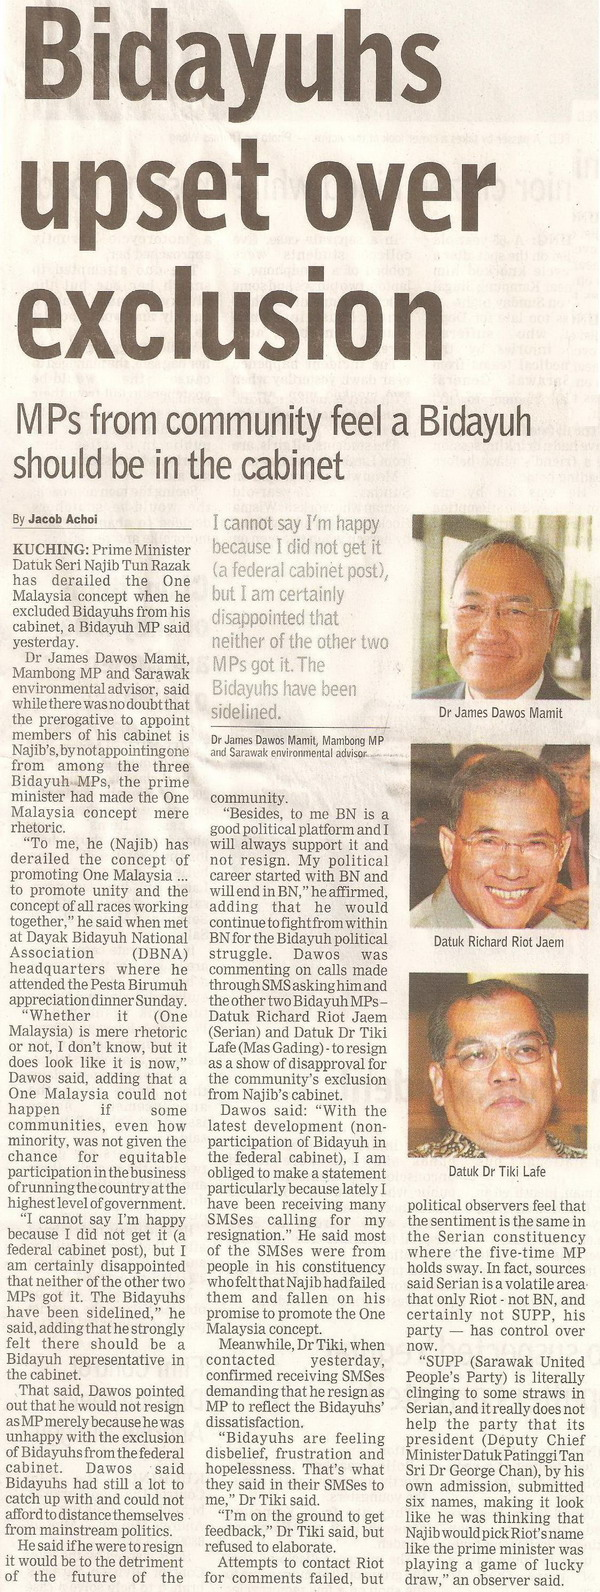 Borneo Post. 2009. Bidayuhs upset over exclusion. April 14, 2009 Edition.